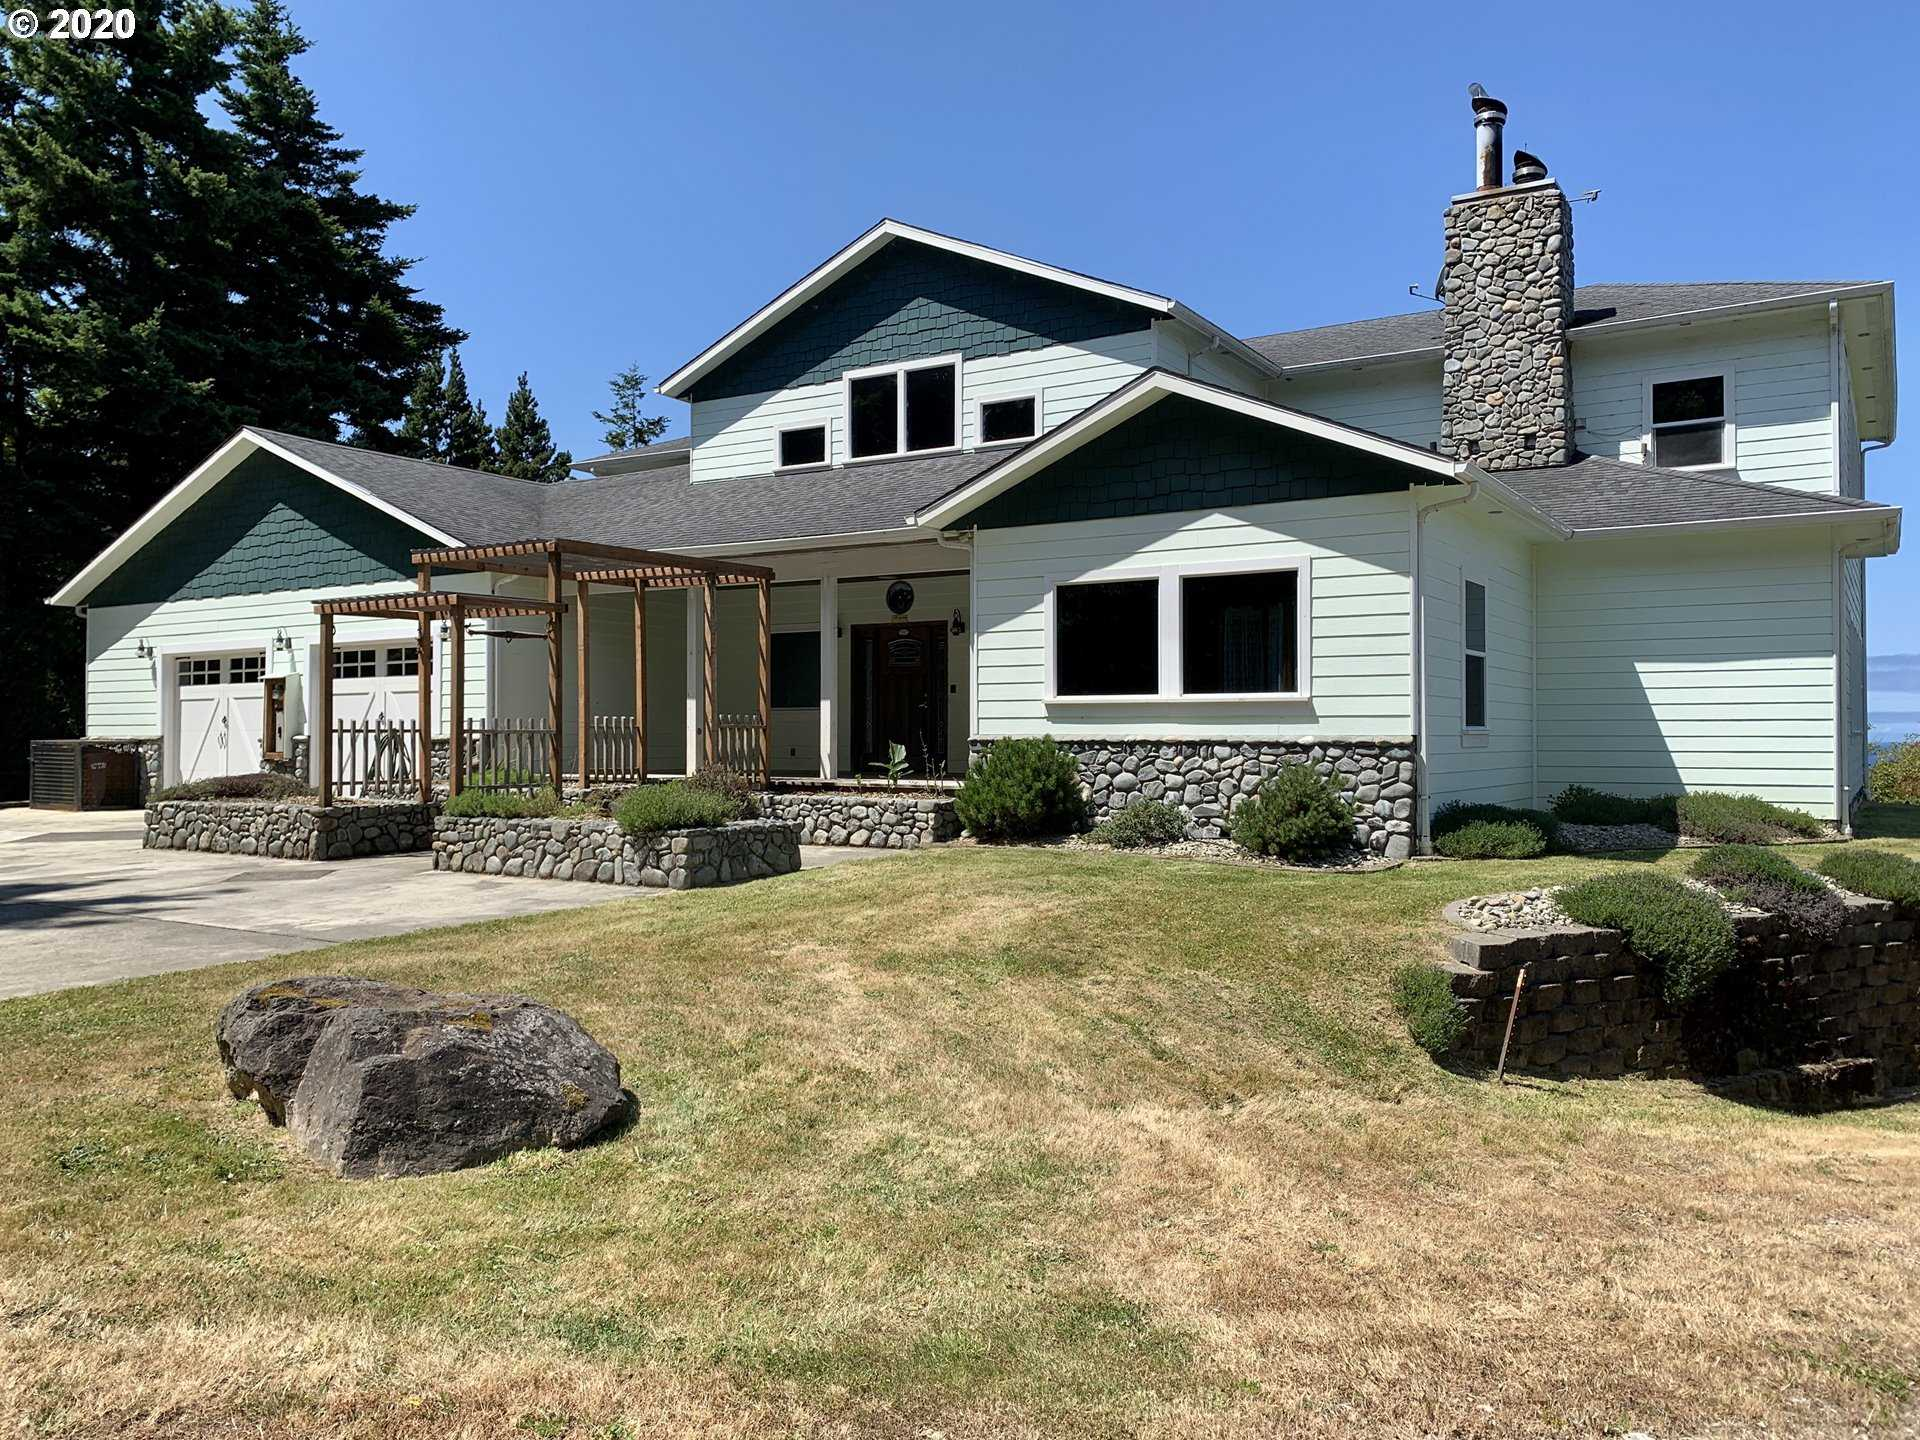 $749,000 - 4Br/3Ba -  for Sale in Paradise Terrace Subdivision, Port Orford